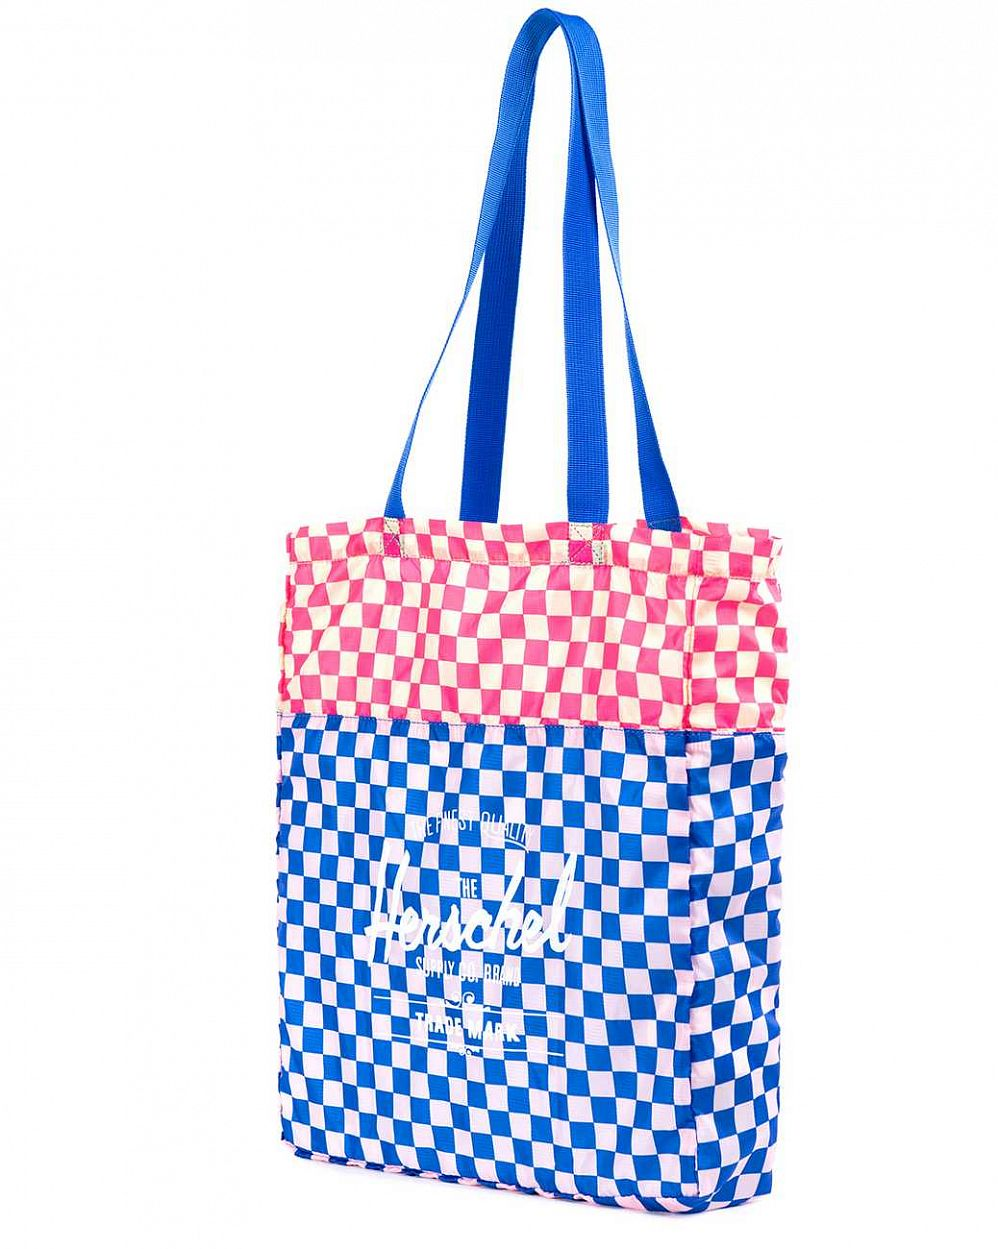 Сумка складная Herschel Packable Travel Tote Bag Cobalt Picnic цена в Москве